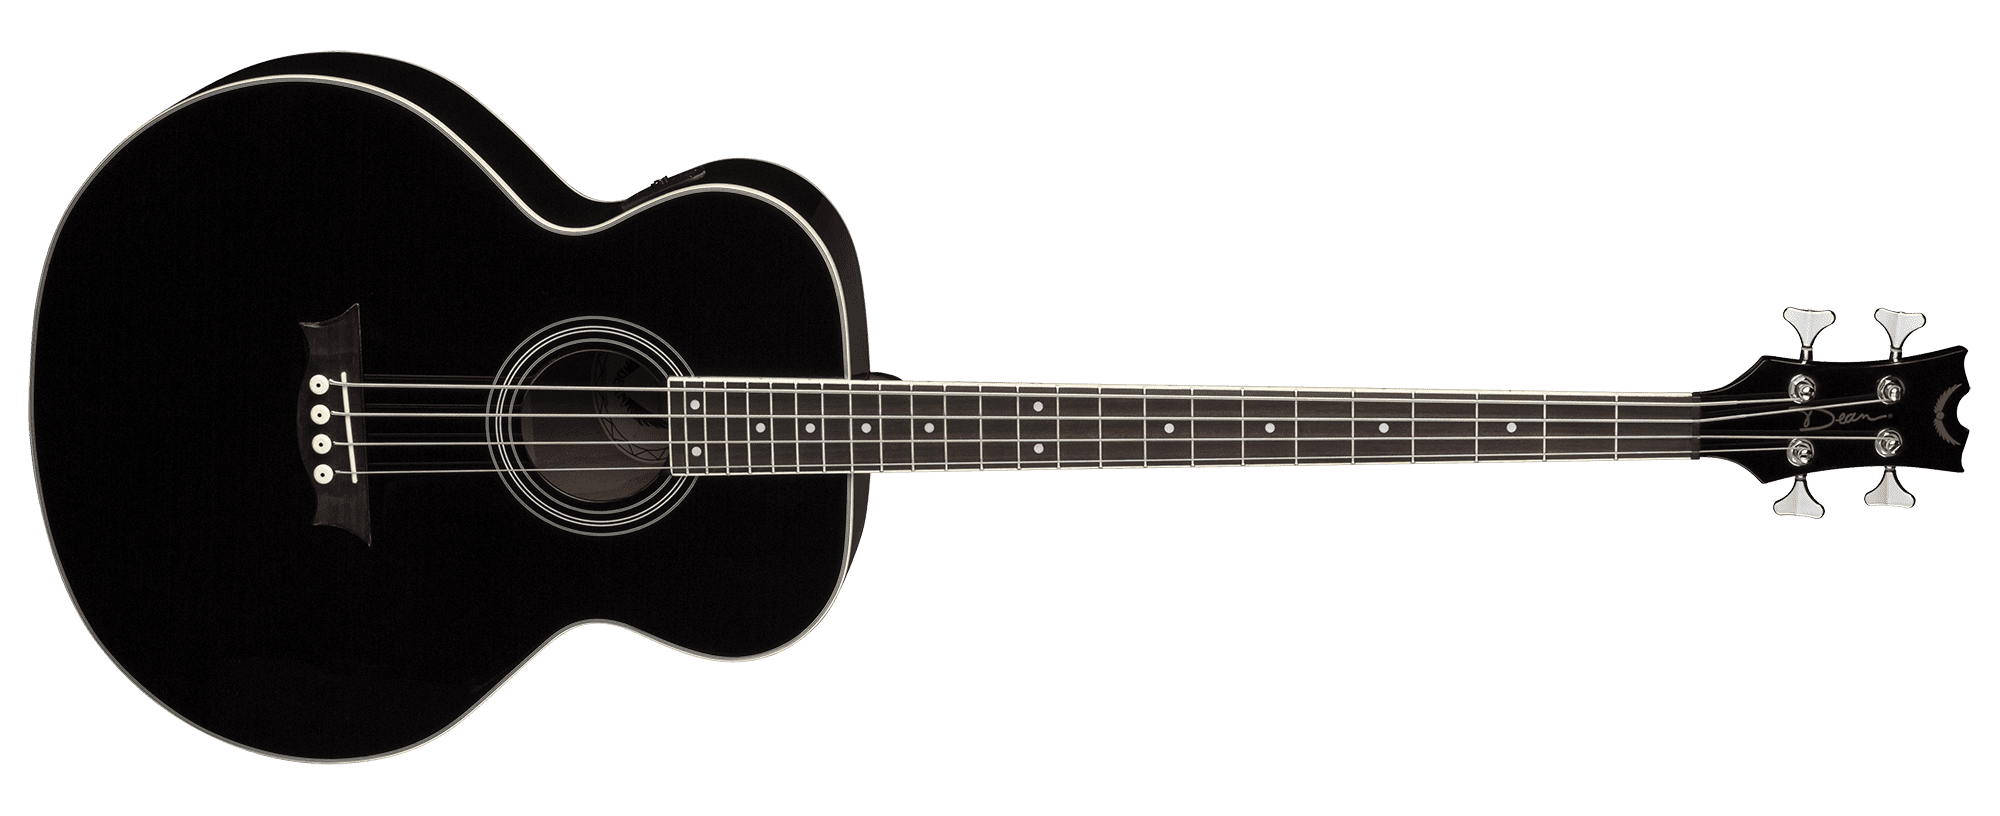 hight resolution of dean guitars image